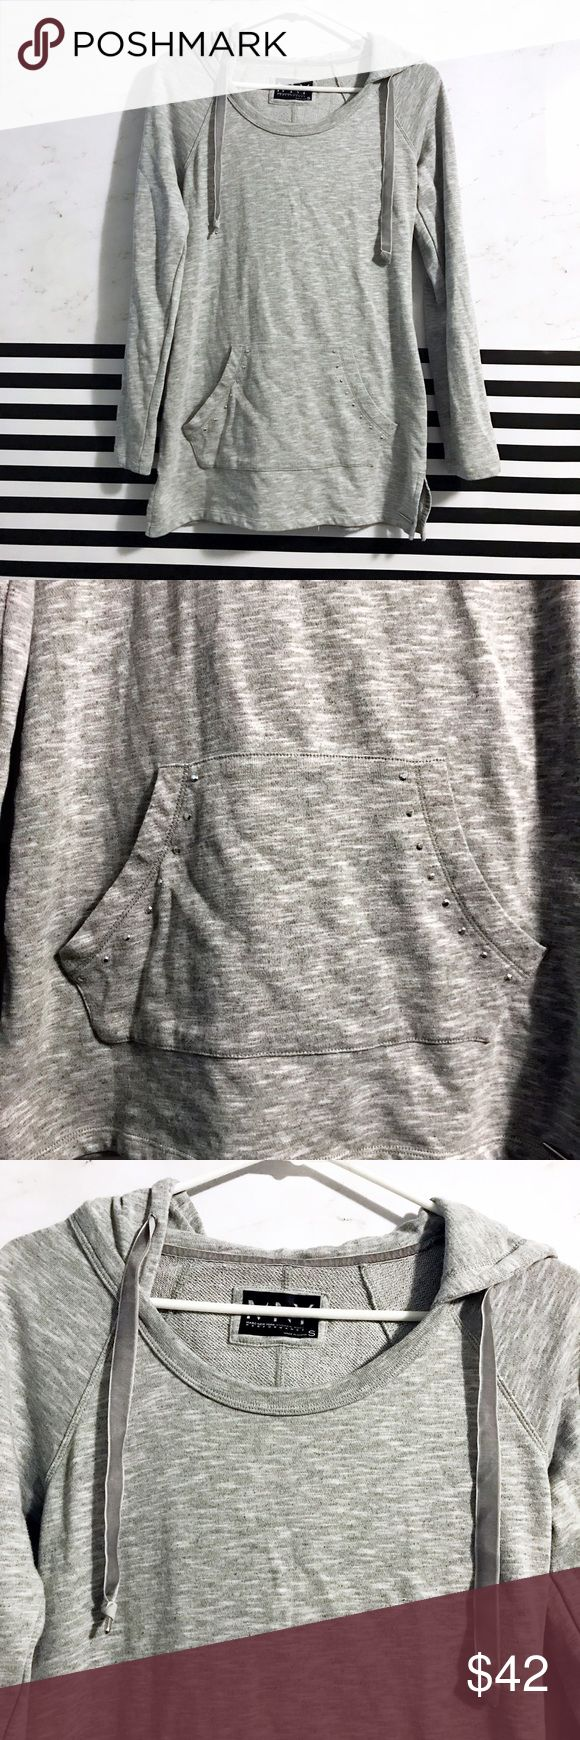 Andrew Marc gray pullover hoodie with pocket Andrew Marc (Marc New York performance) gray pullover hoodie with pocket that has rhinestones on it. Drawstring for hood is nice faux suede like material. High quality comfortable top. FAST SHIPPING Andrew Marc Tops